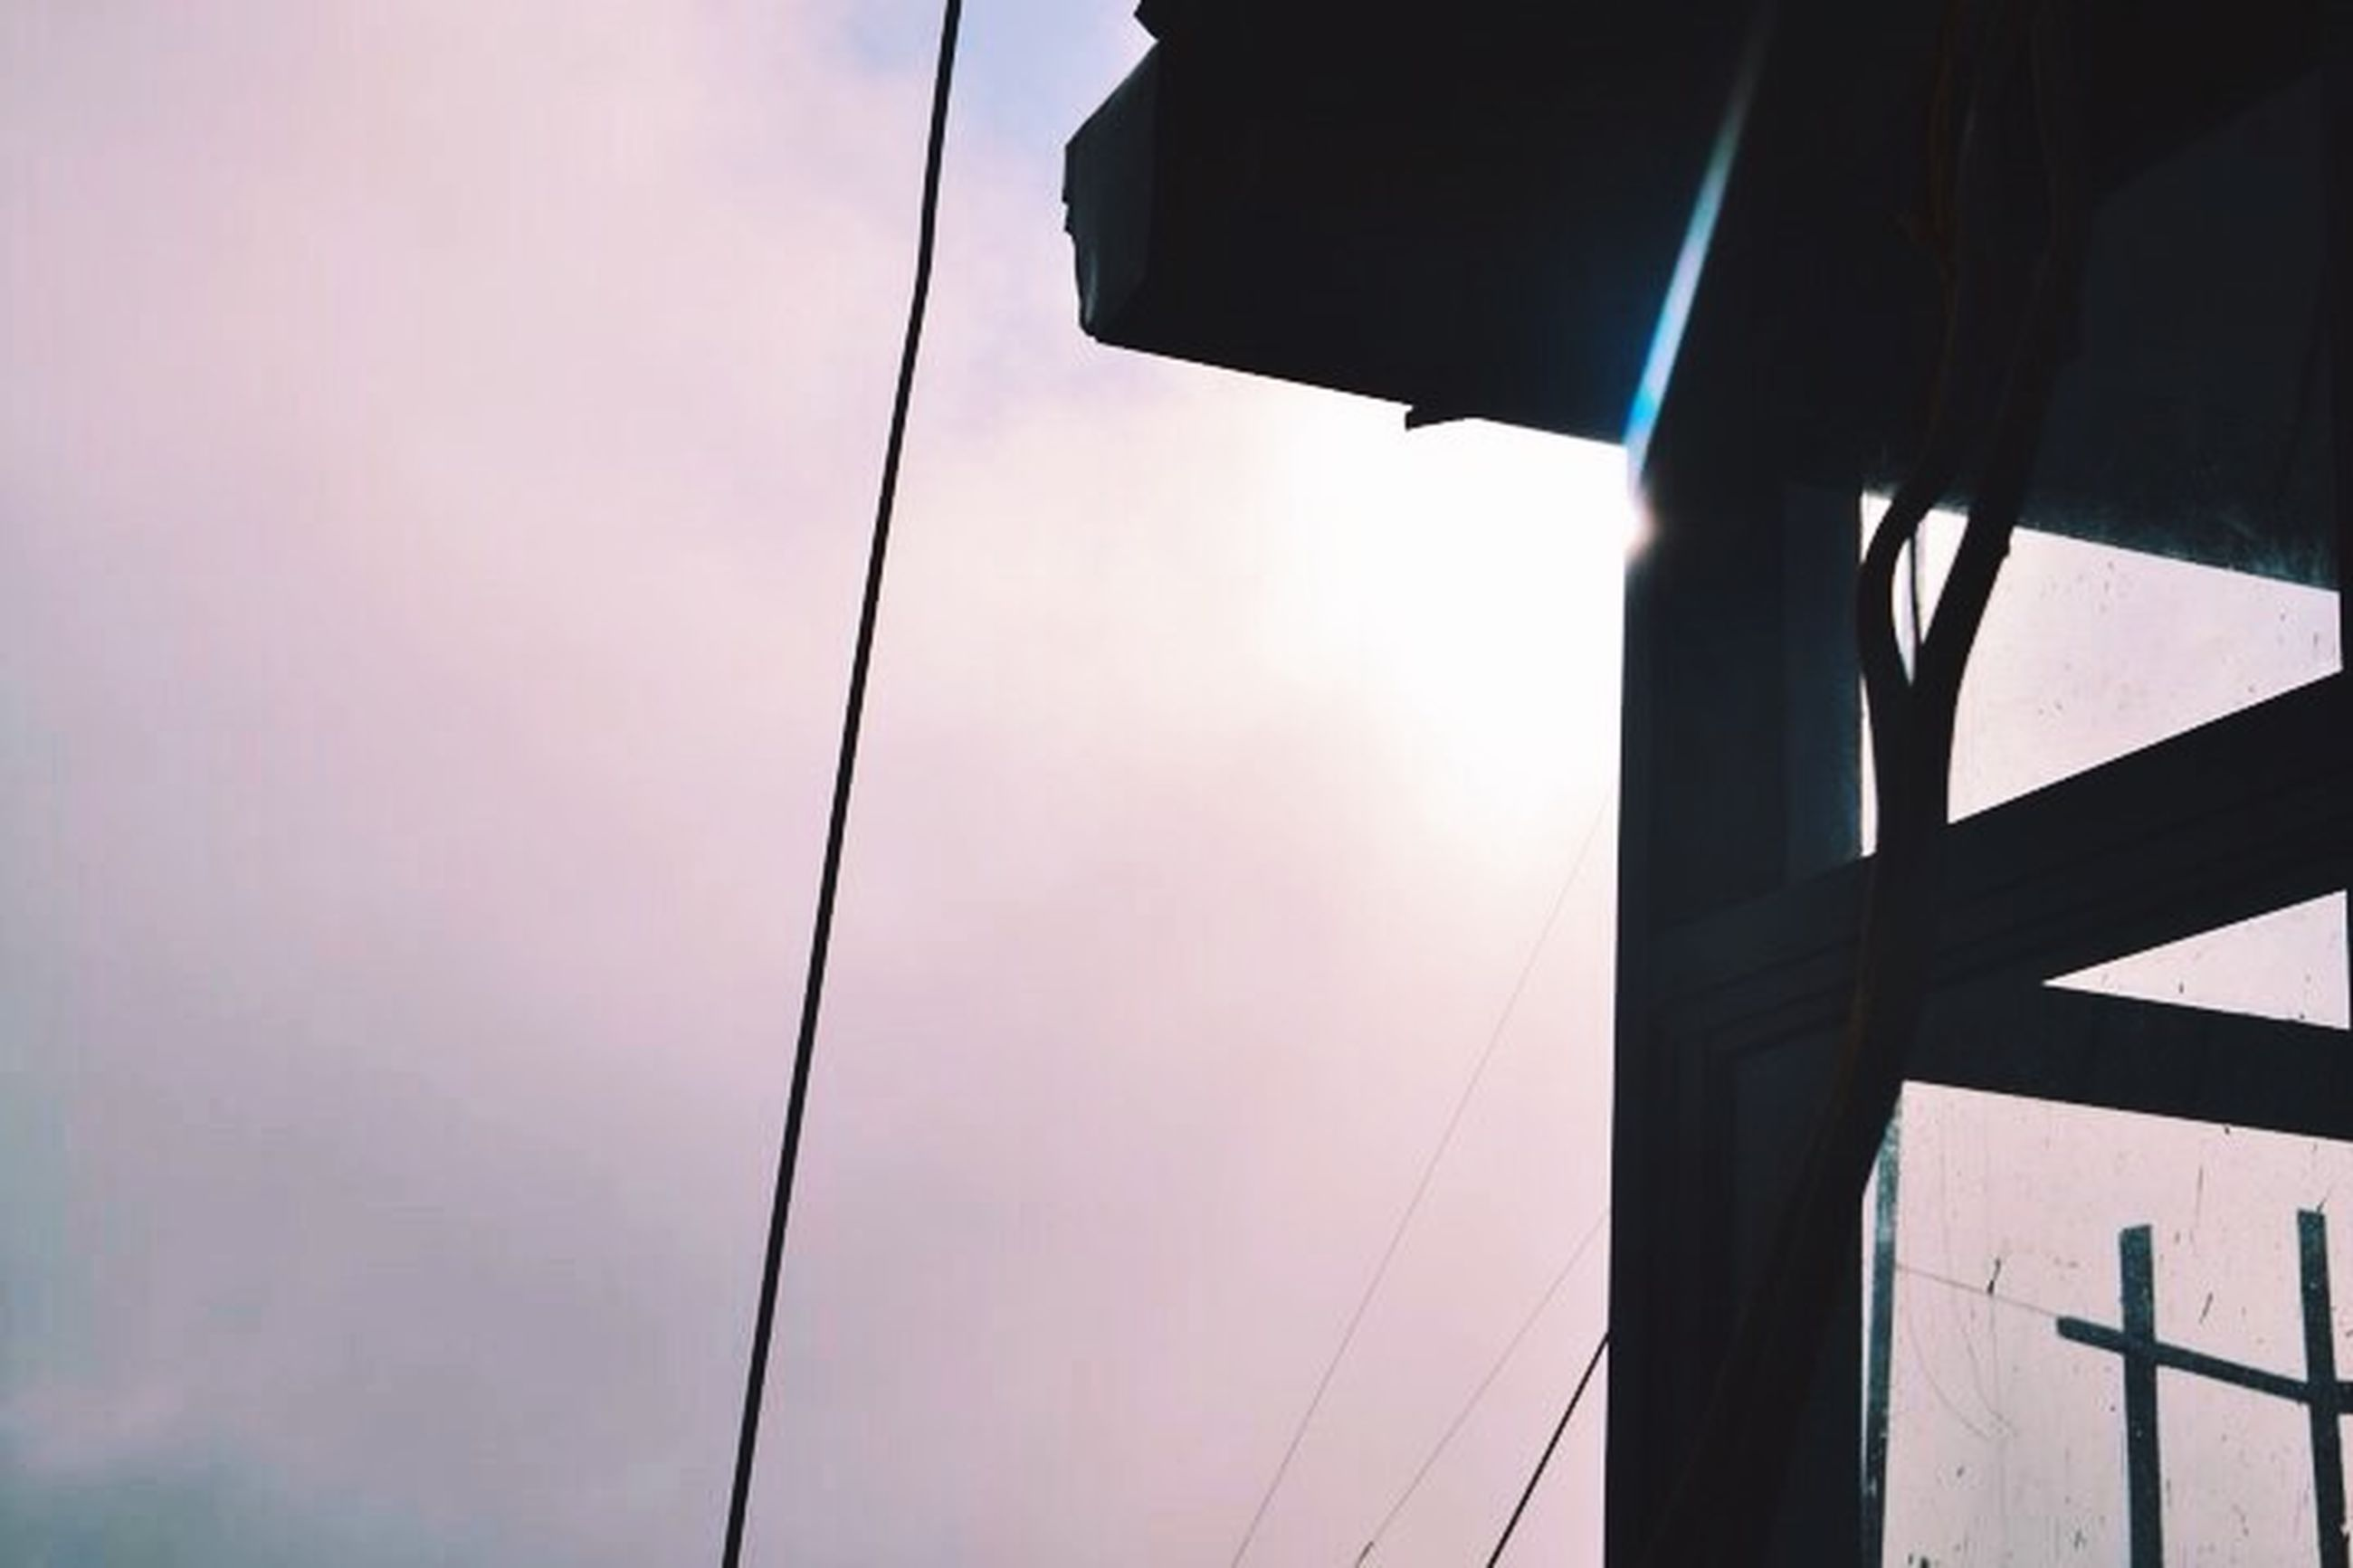 low angle view, sky, built structure, architecture, power line, cable, silhouette, electricity, connection, building exterior, sunlight, part of, clear sky, no people, street light, outdoors, electricity pylon, day, pole, power supply